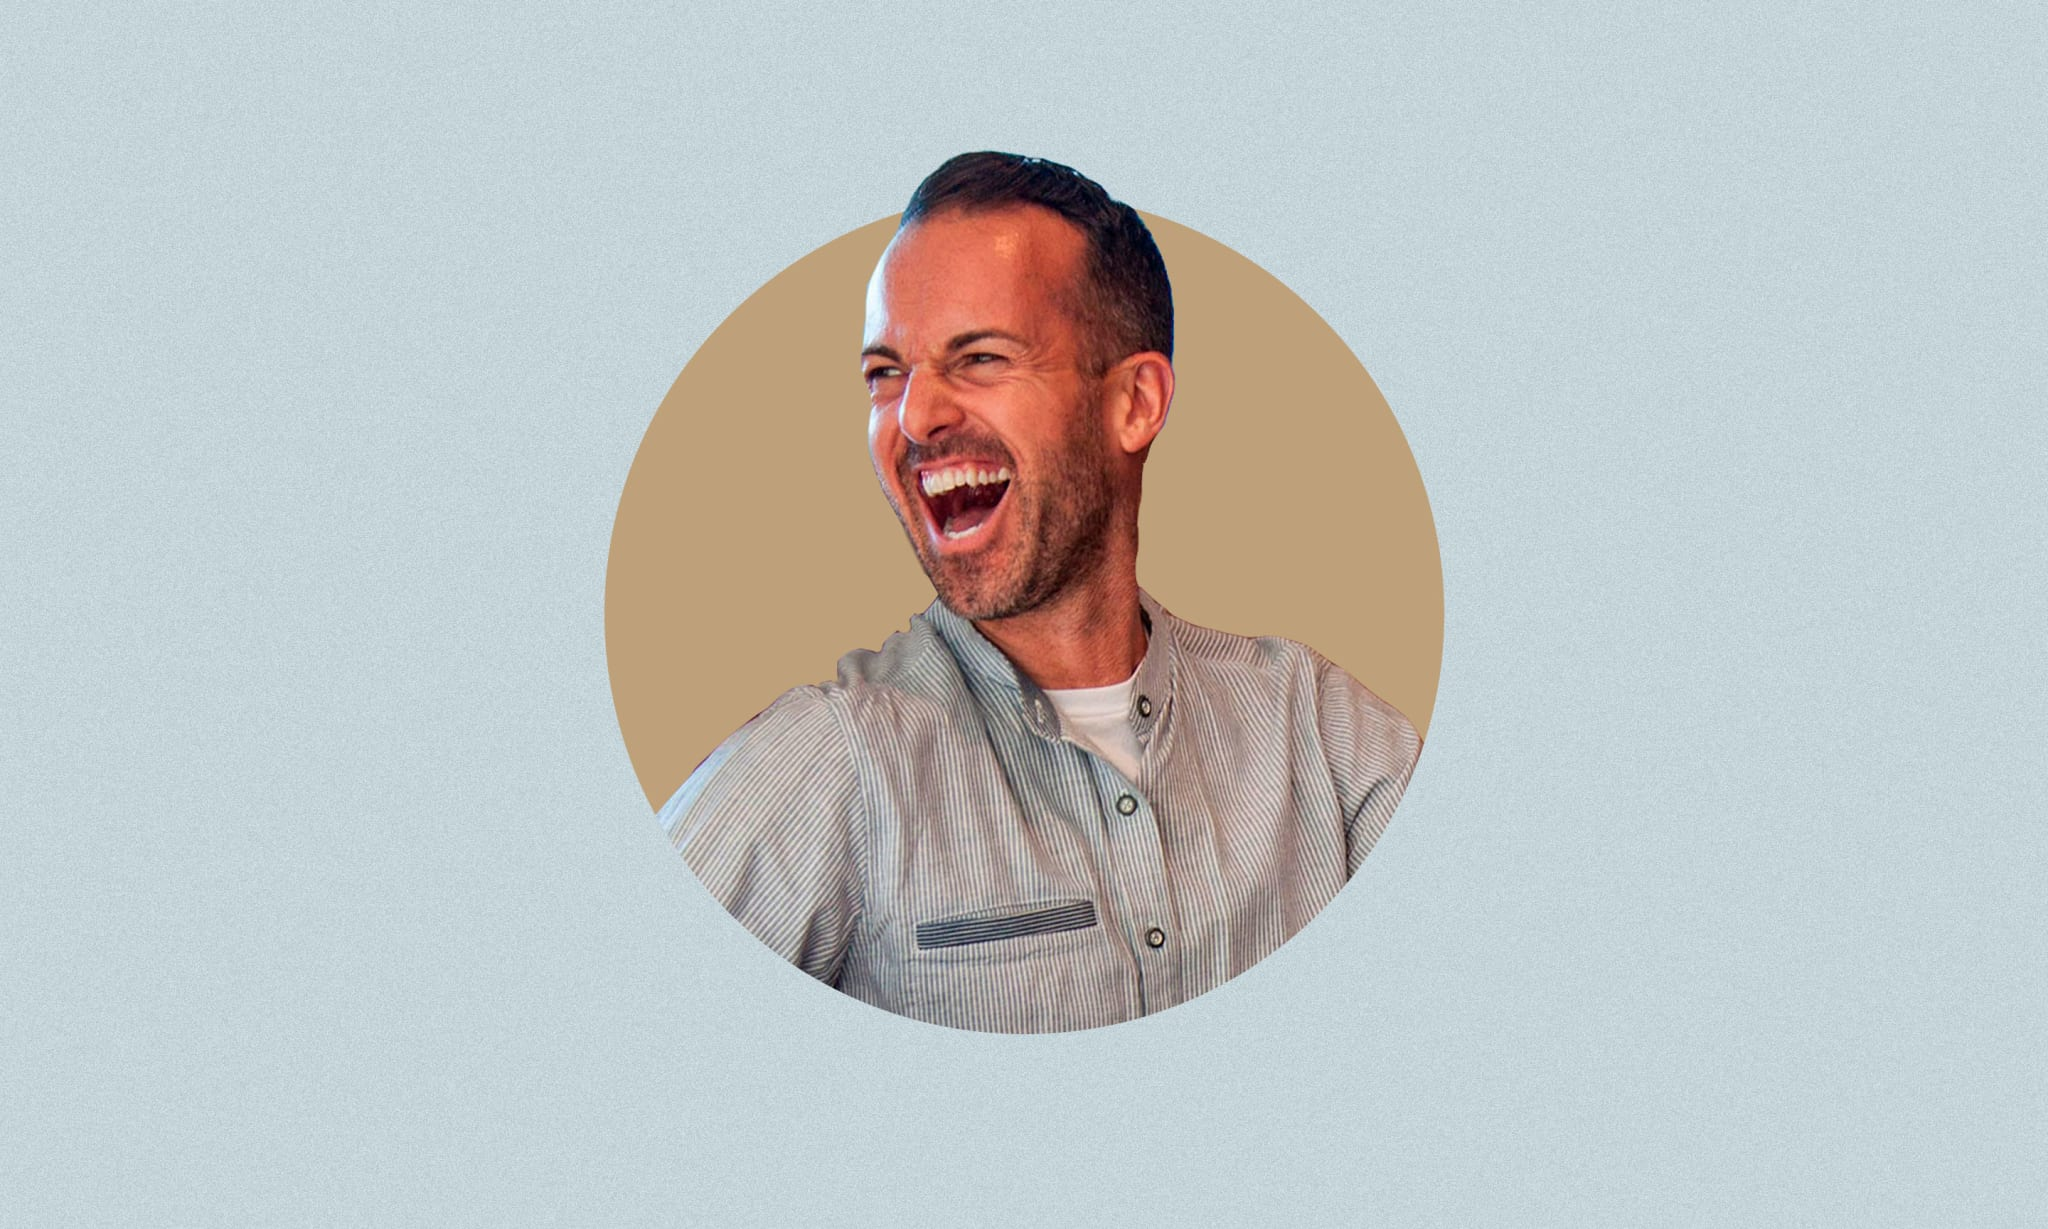 A cutout of a laughing man on a blue background.